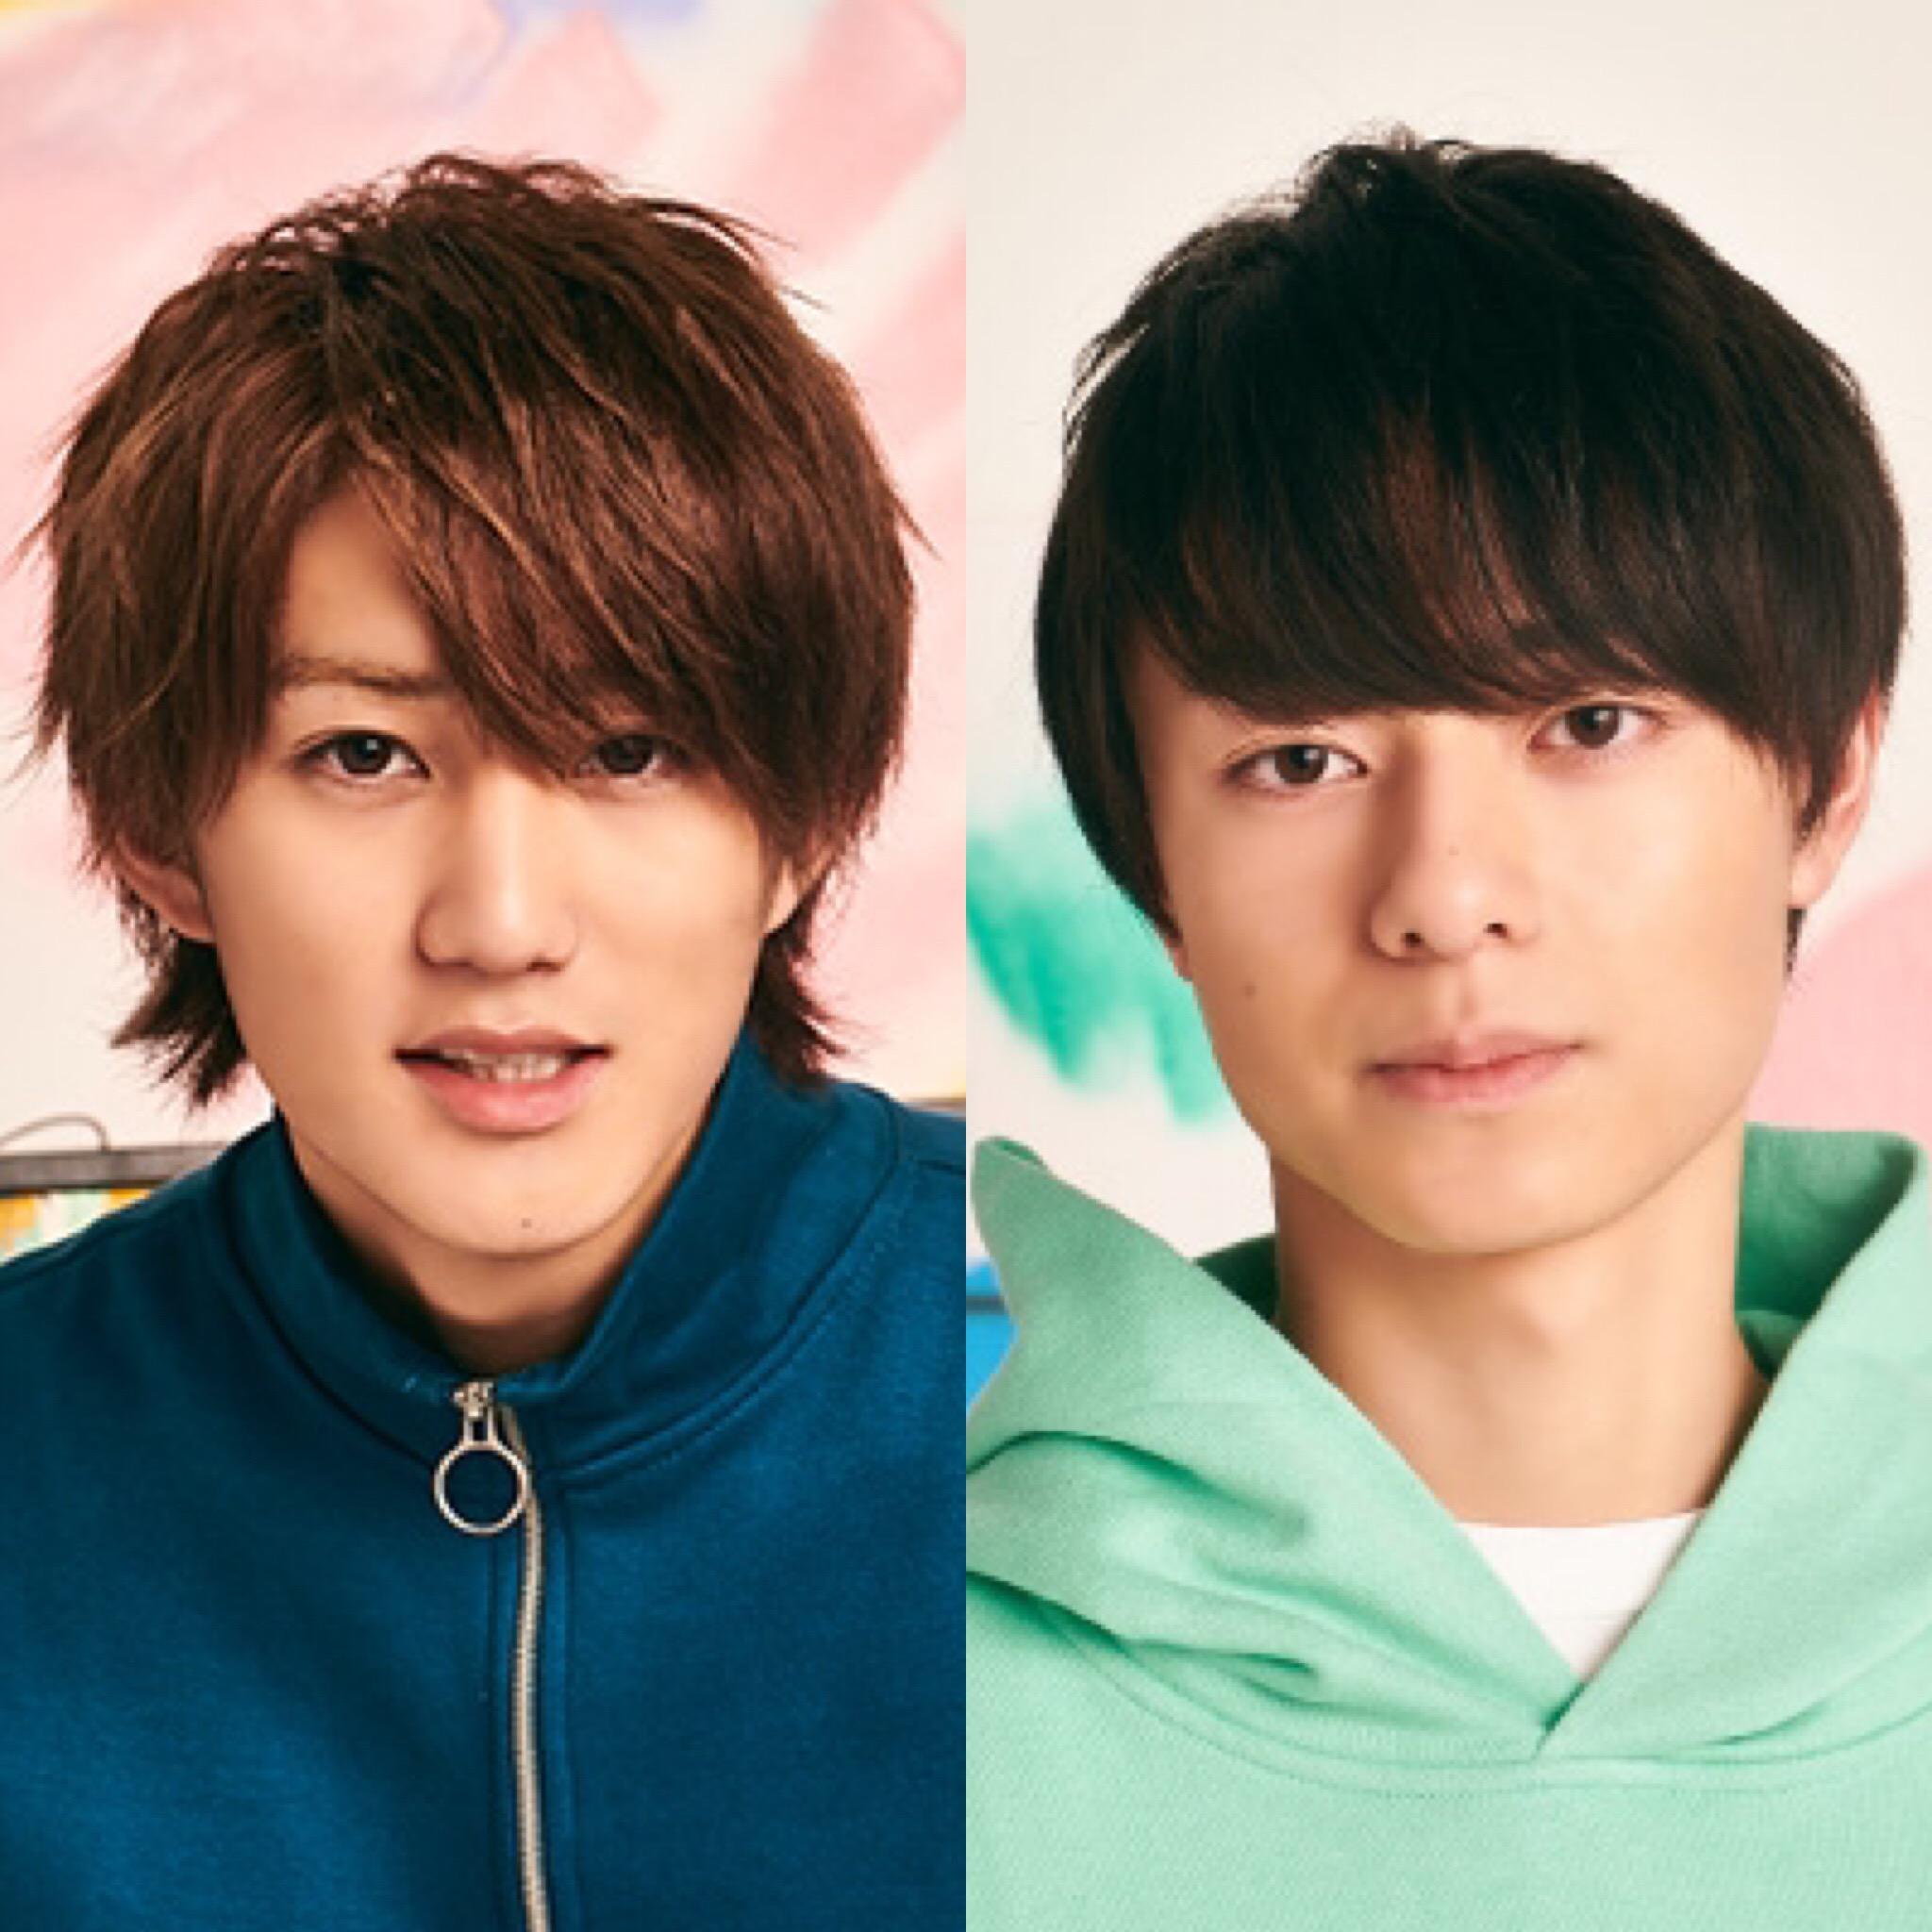 HiHi Jets members Ryo Hashimoto & Ryuto Sakuma punished for leaked photos with female